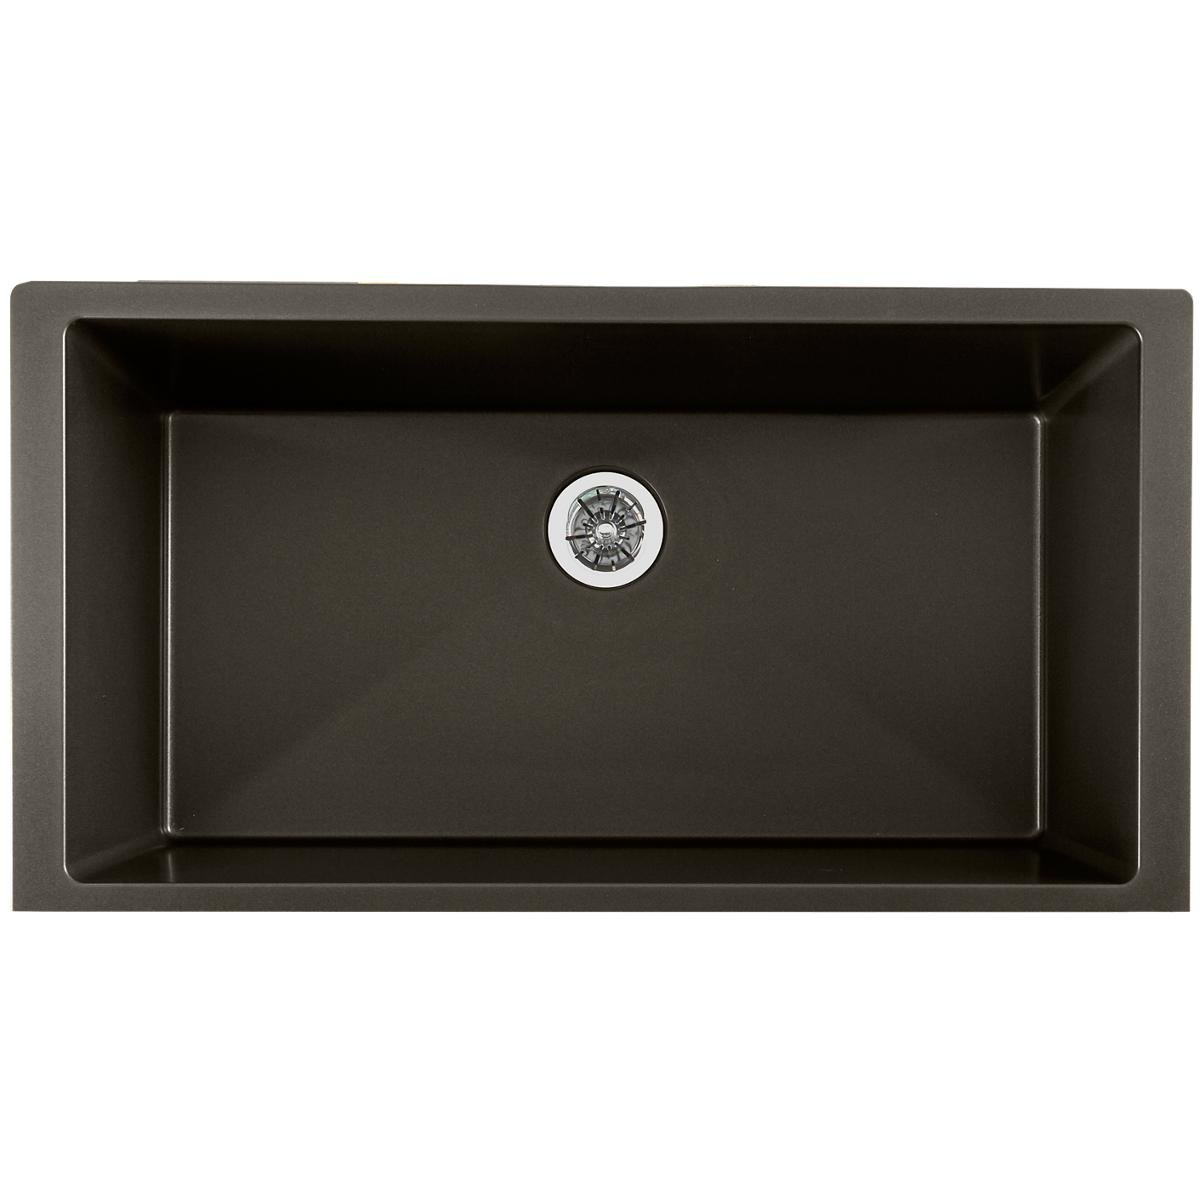 Elkay Quartz Luxe ELXRUP3620CA0 Single Bowl Undermount Kitchen Sink with Perfect Drain, Caviar